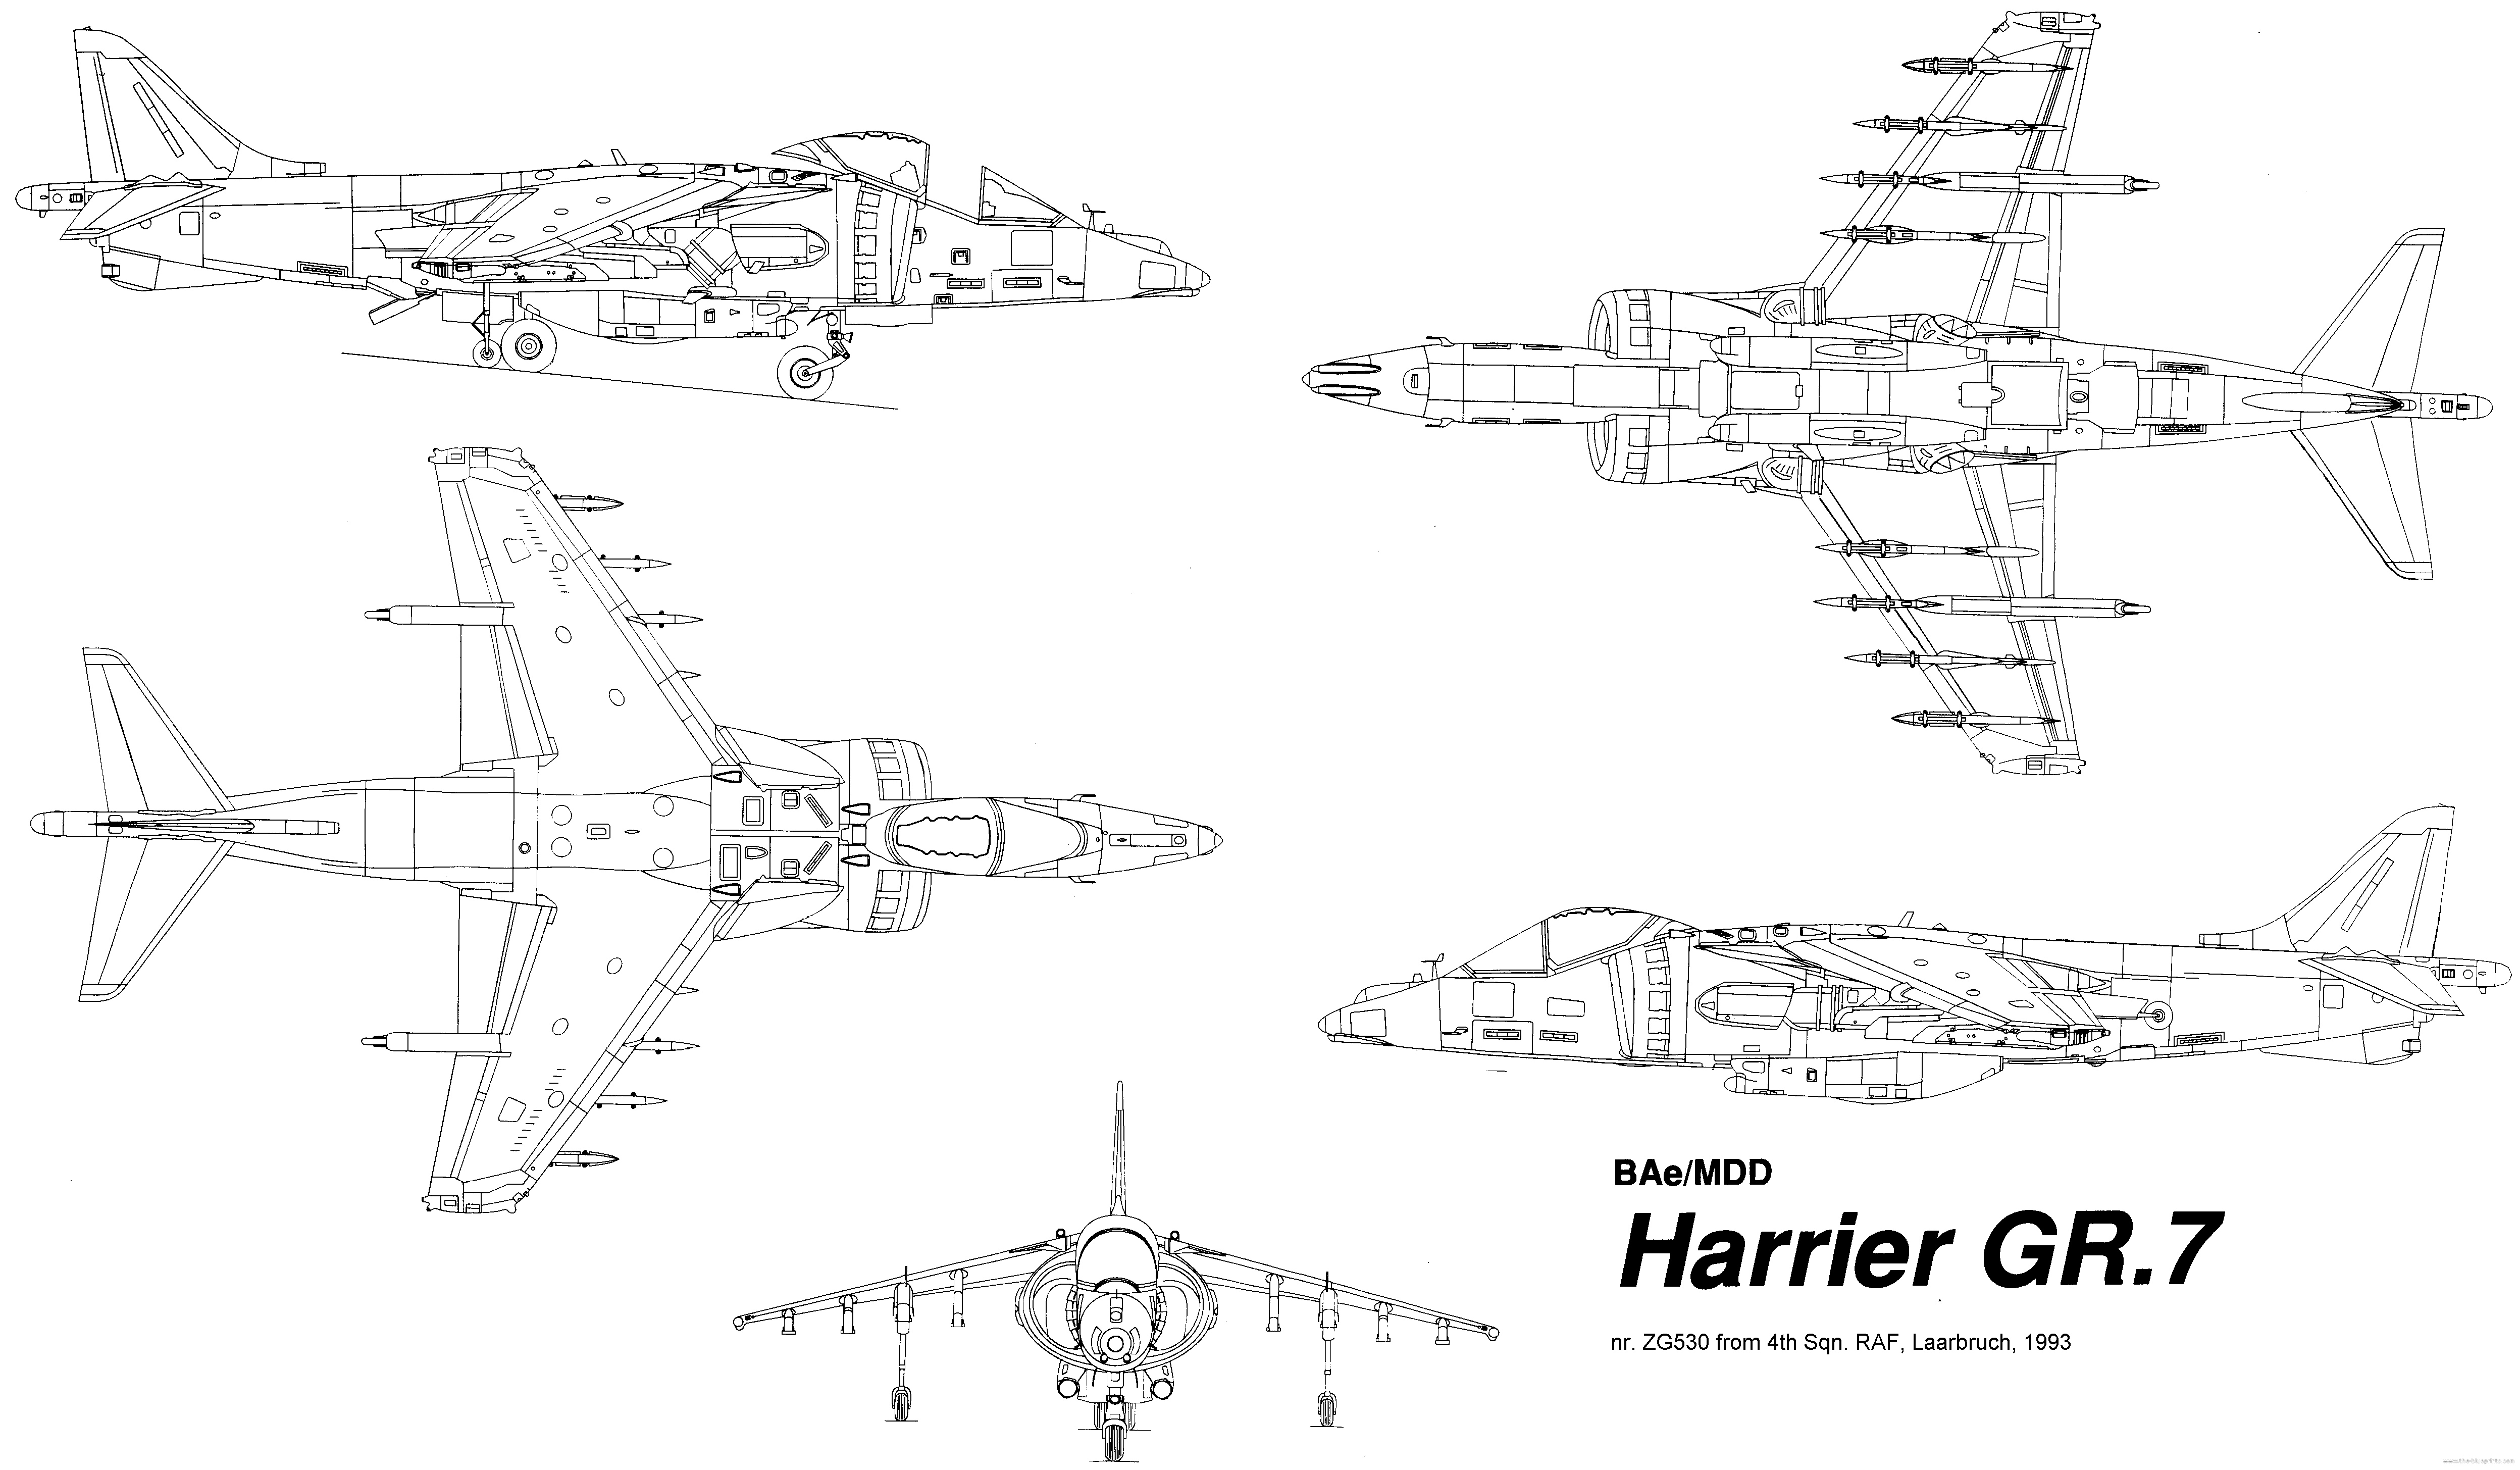 military aircraft schematics with Showthread on An 70 Pics additionally Cvn 65 Gallery additionally F 5 Pics further Devices Operated By Hydraulic System In Aircraft additionally F 17 Pics.